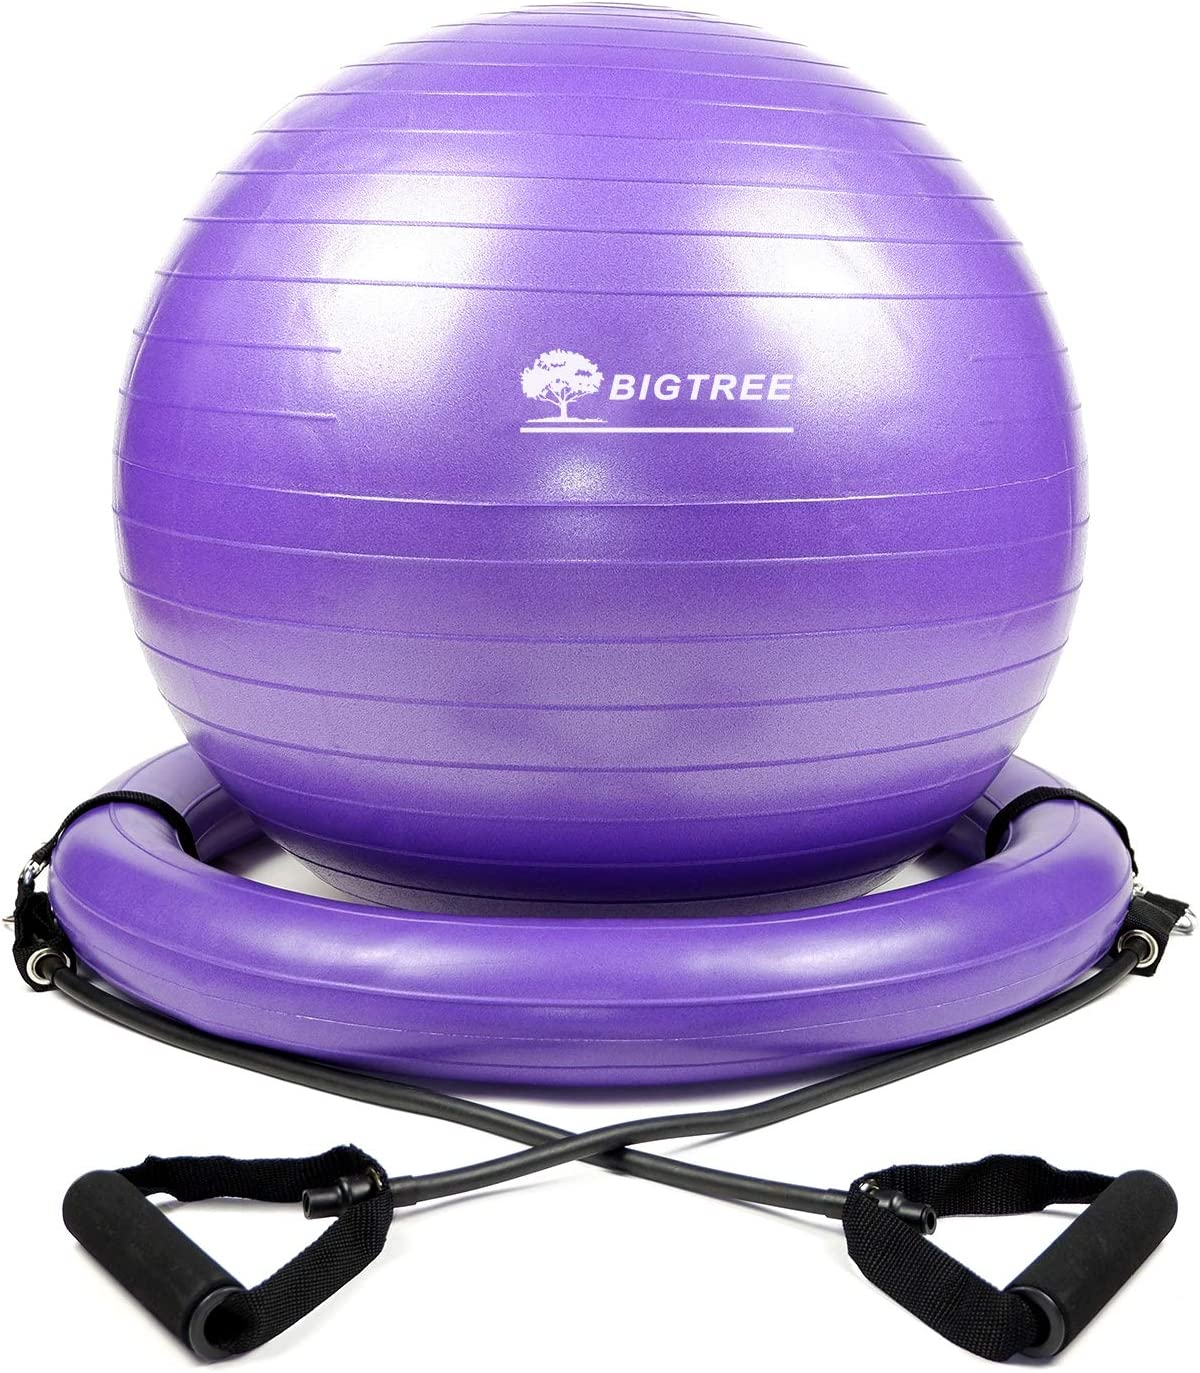 BIGTREE Exercise Ball Chair with Resistance Bands Perfect for Office Yoga Balance Fitness Super Strong Set